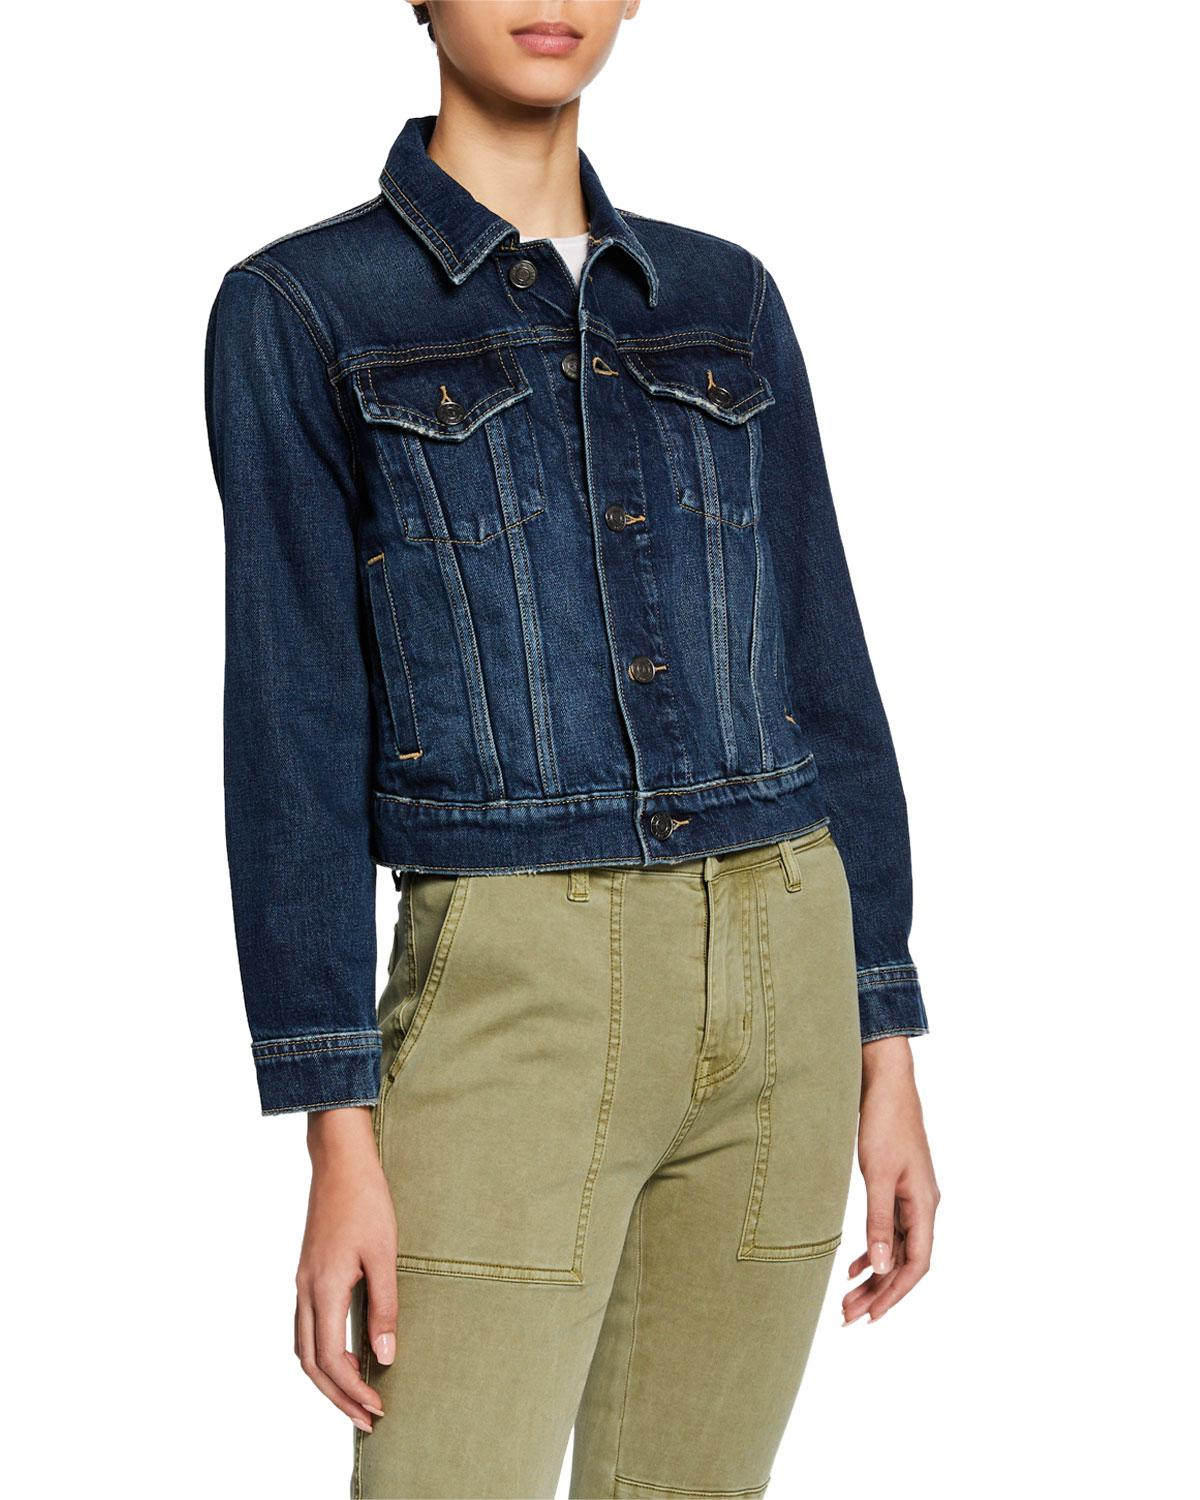 8f5a4e3da Lyst - Current Elliott The Baby Trucker Cropped Denim Jacket in Blue